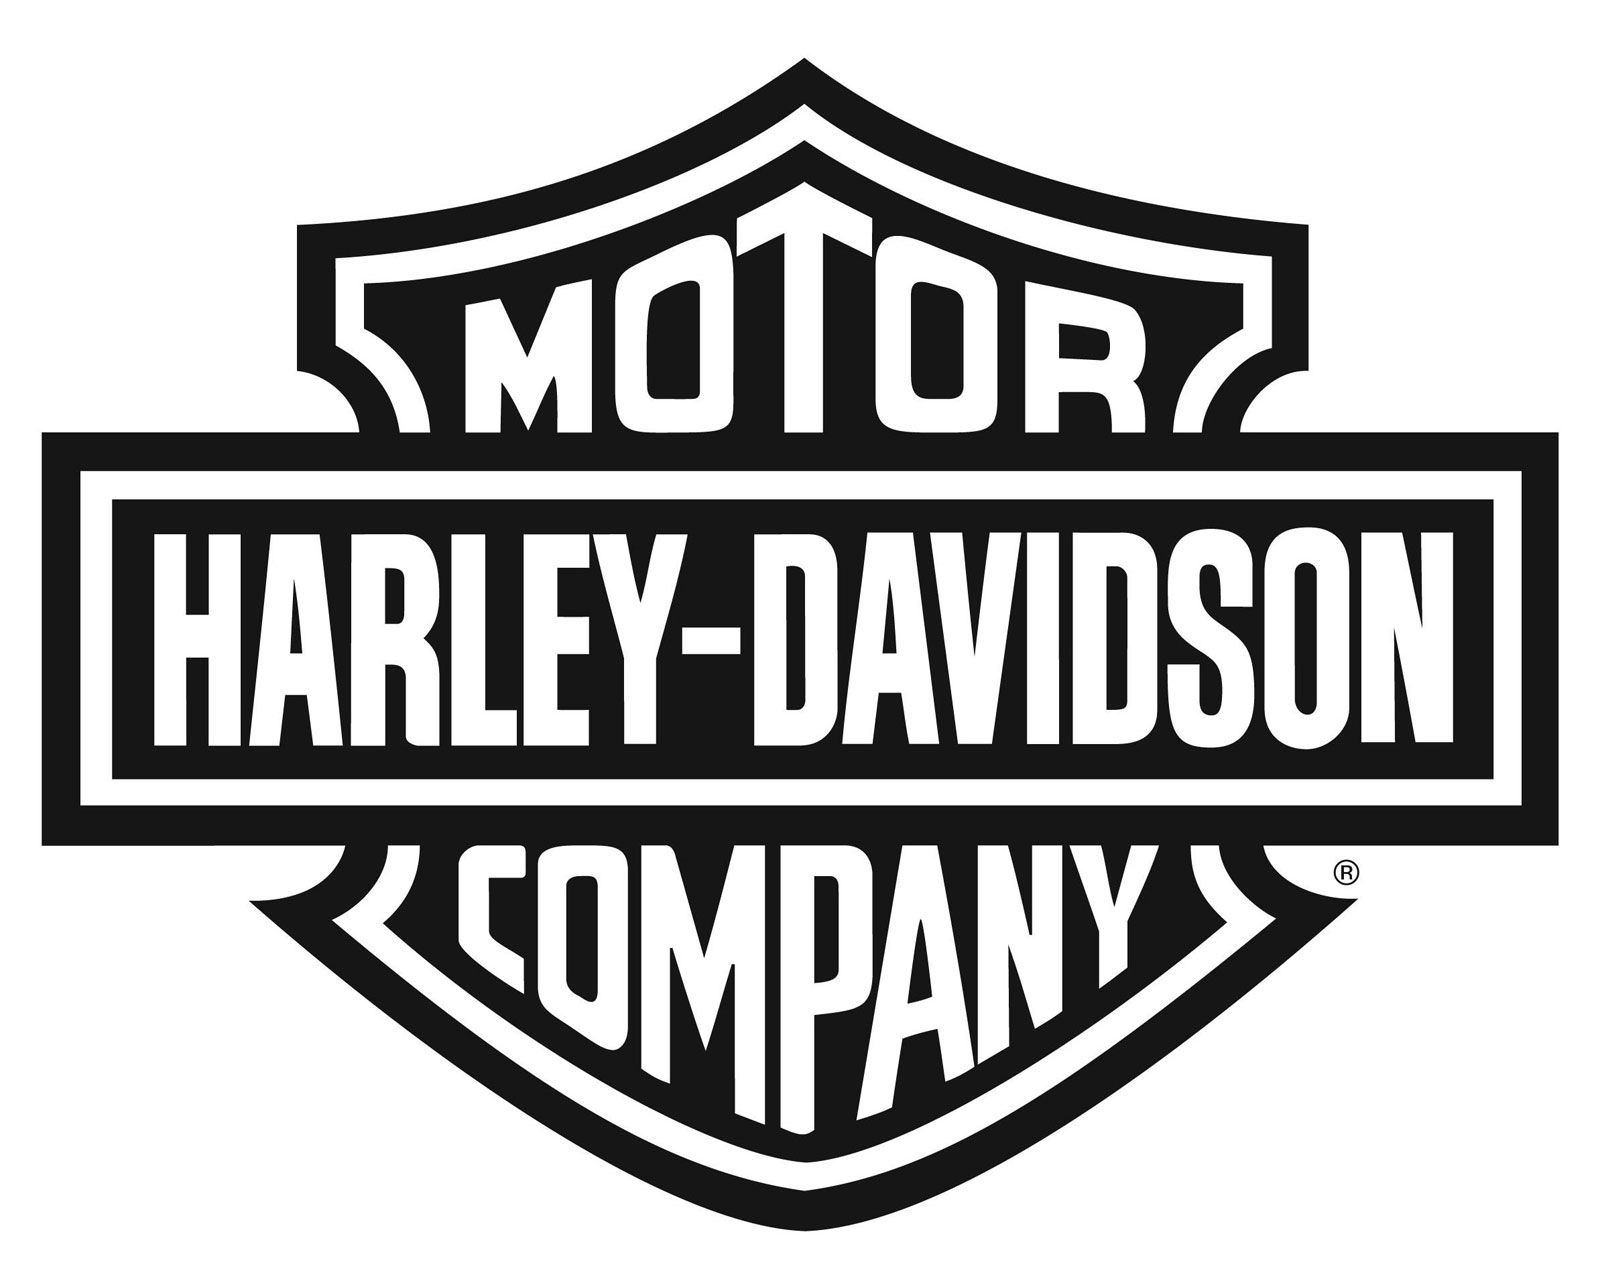 Best Harley Decals Airbrush Gas Tank Stencils Vinyl Images On - Stickers for motorcycles harley davidsons